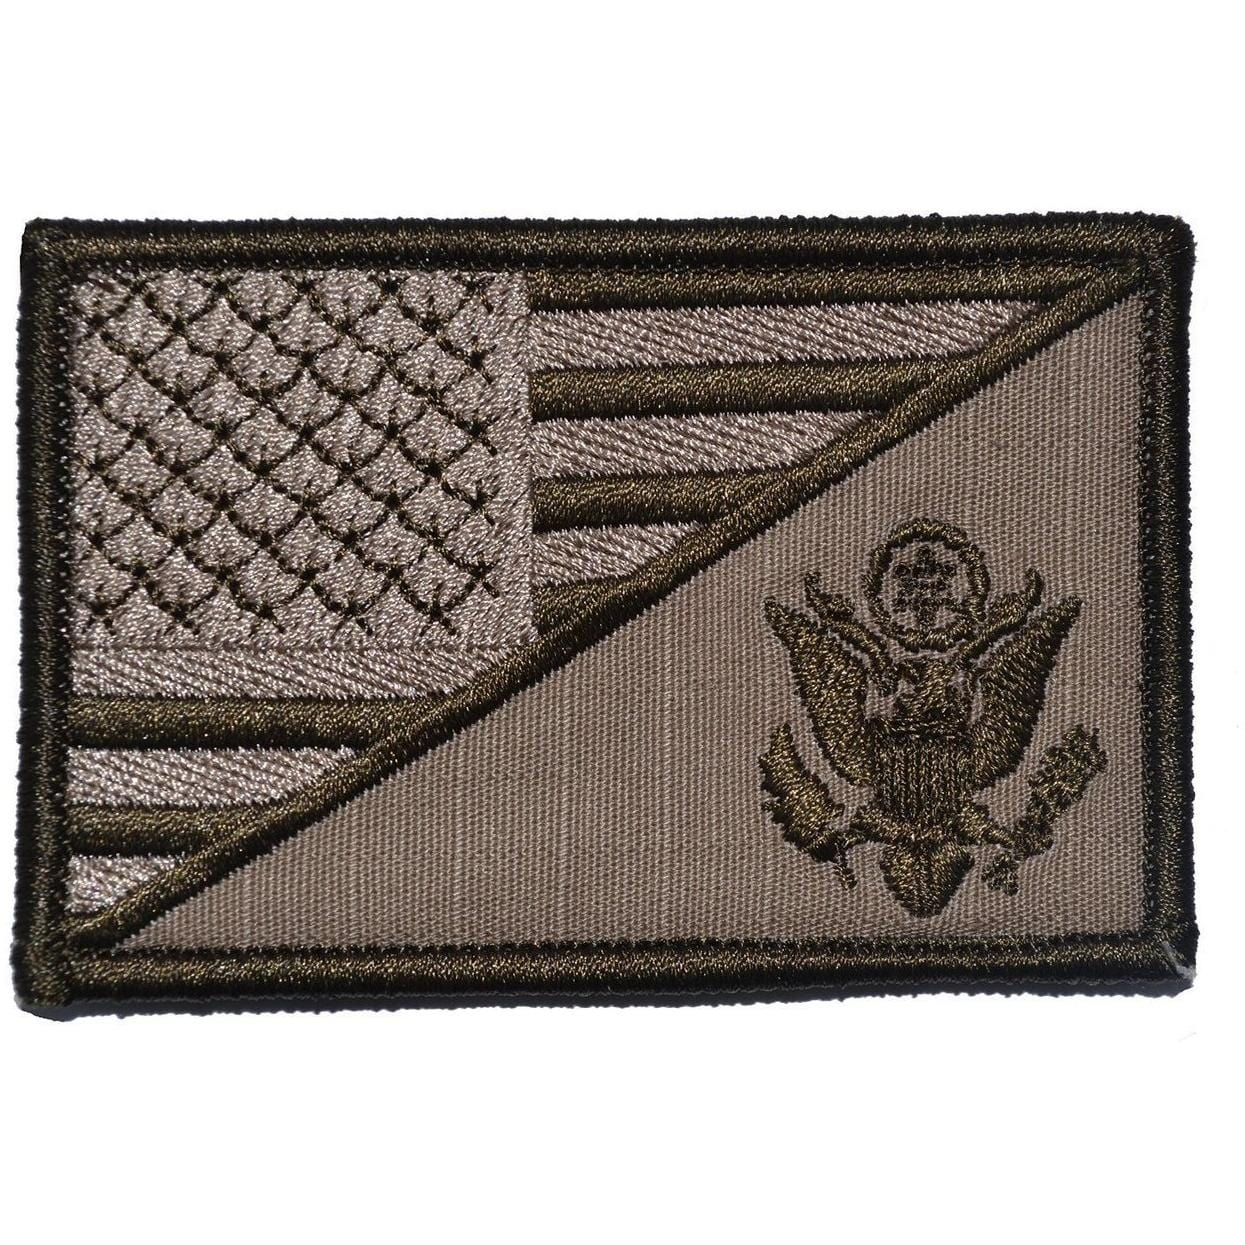 Tactical Gear Junkie Patches Coyote Brown US Army Crest USA Flag - 2.25x3.5 Patch